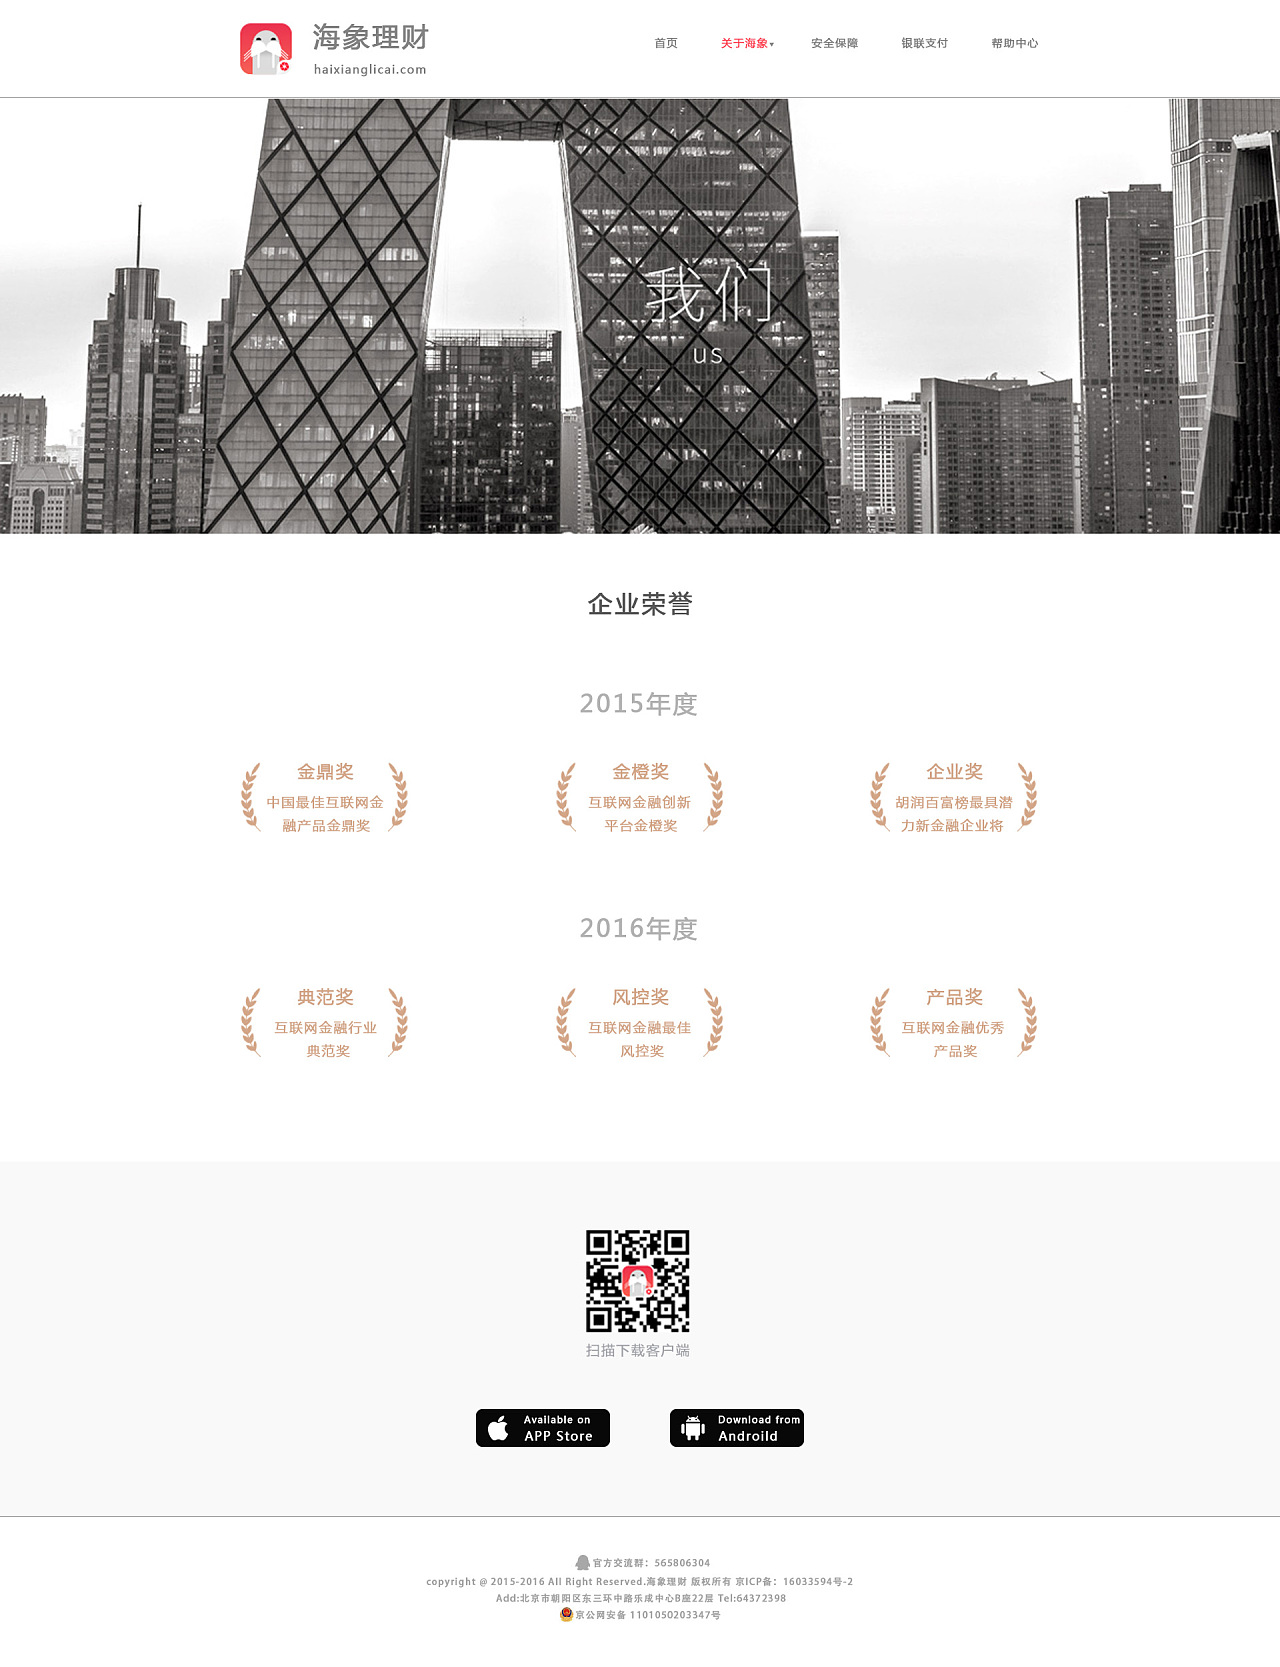 Chinese Financial Website Design